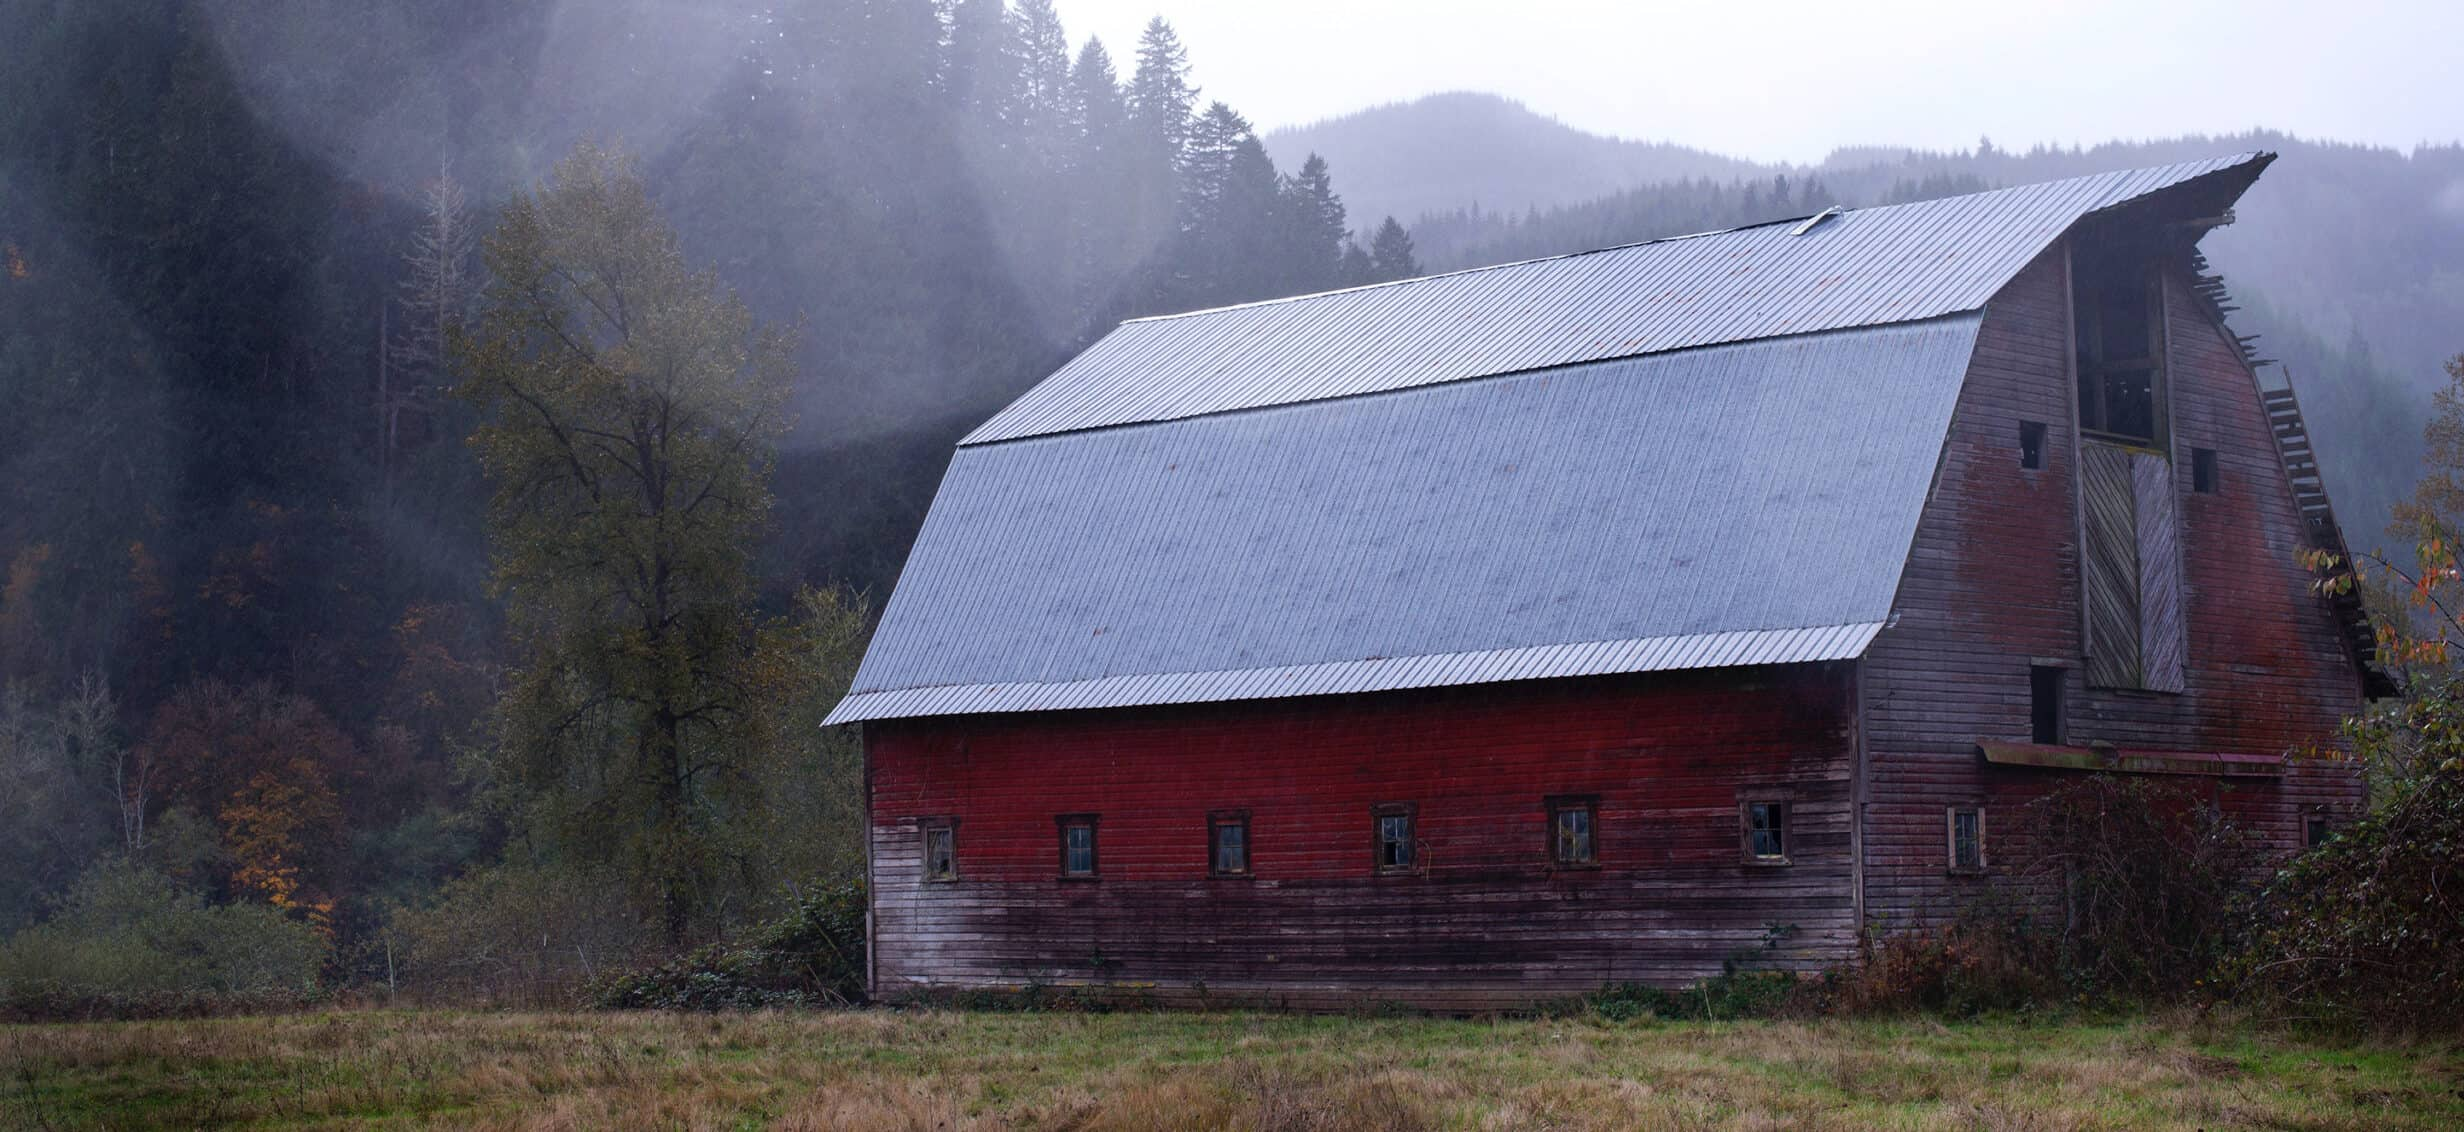 A large, red barn with a small mountain in the background and fog in the air.